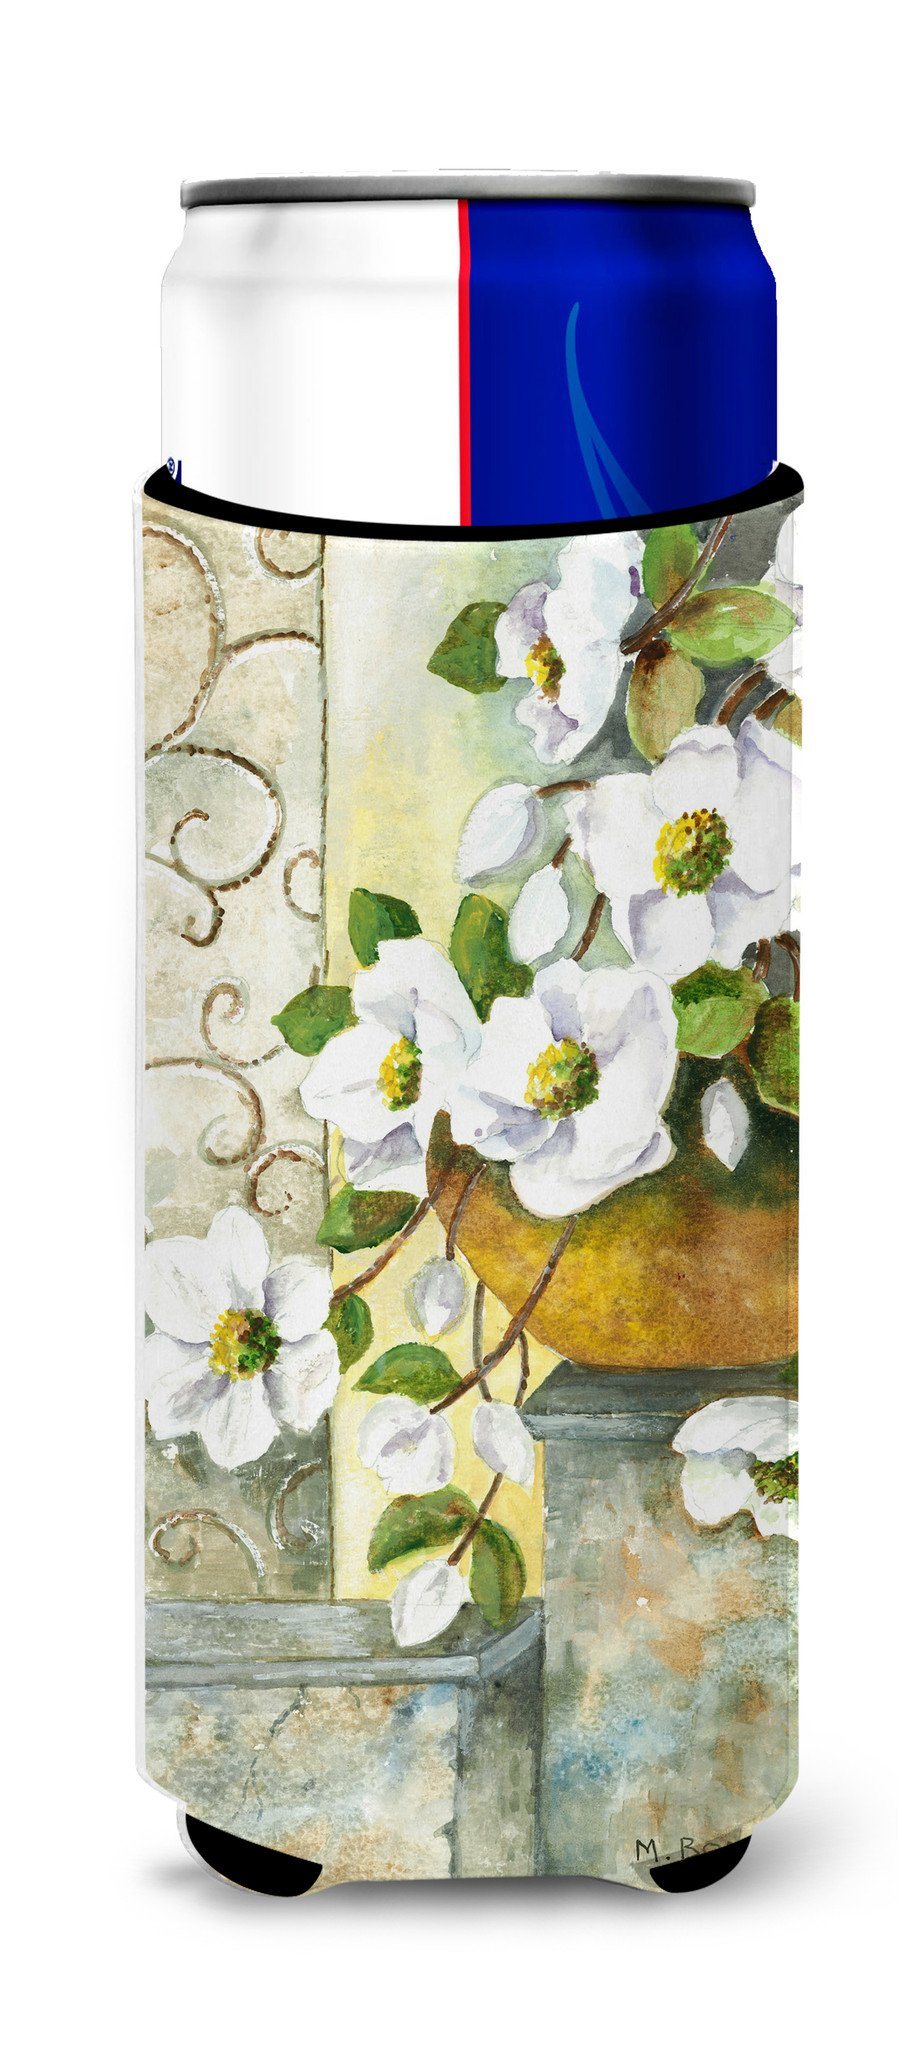 Buy this Dog Rose by Maureen Bonfield Ultra Beverage Insulators for slim cans BMBO0773MUK